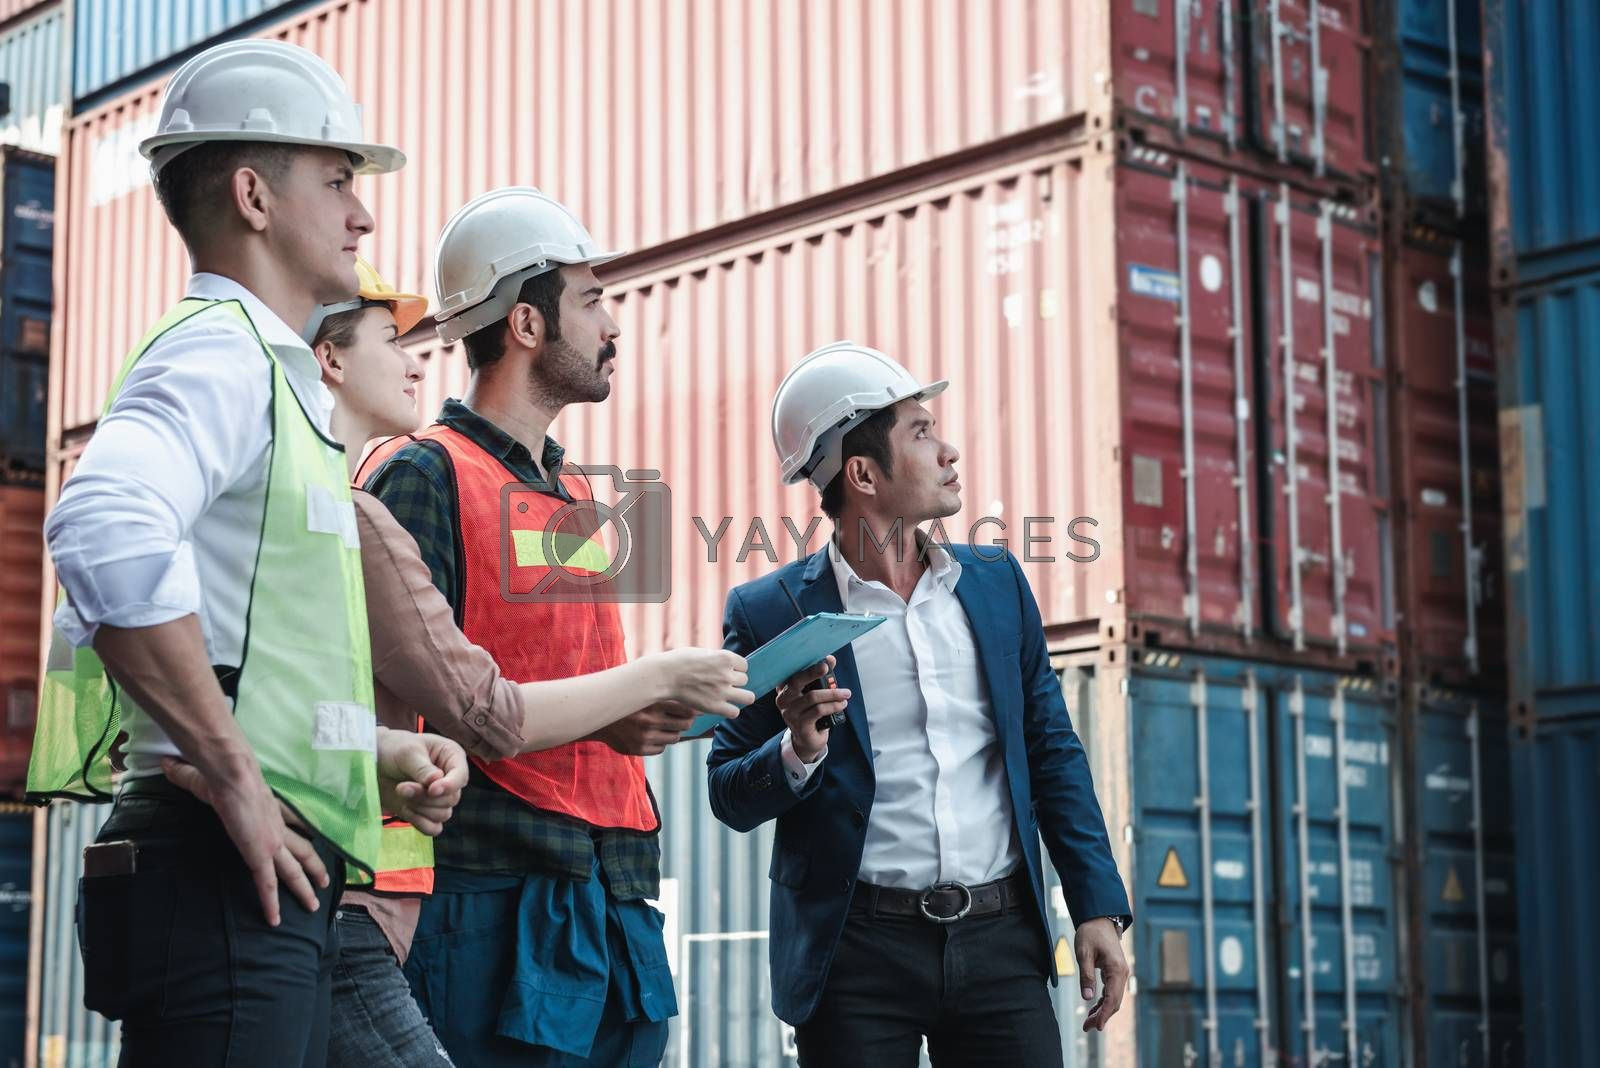 Container Logistics Shipping Storage Management Industry Team, Manager is Briefing Work to Teamwork for Containers Transportation and Factory Storage in Dock Ship. Transport Industrial and Logistic